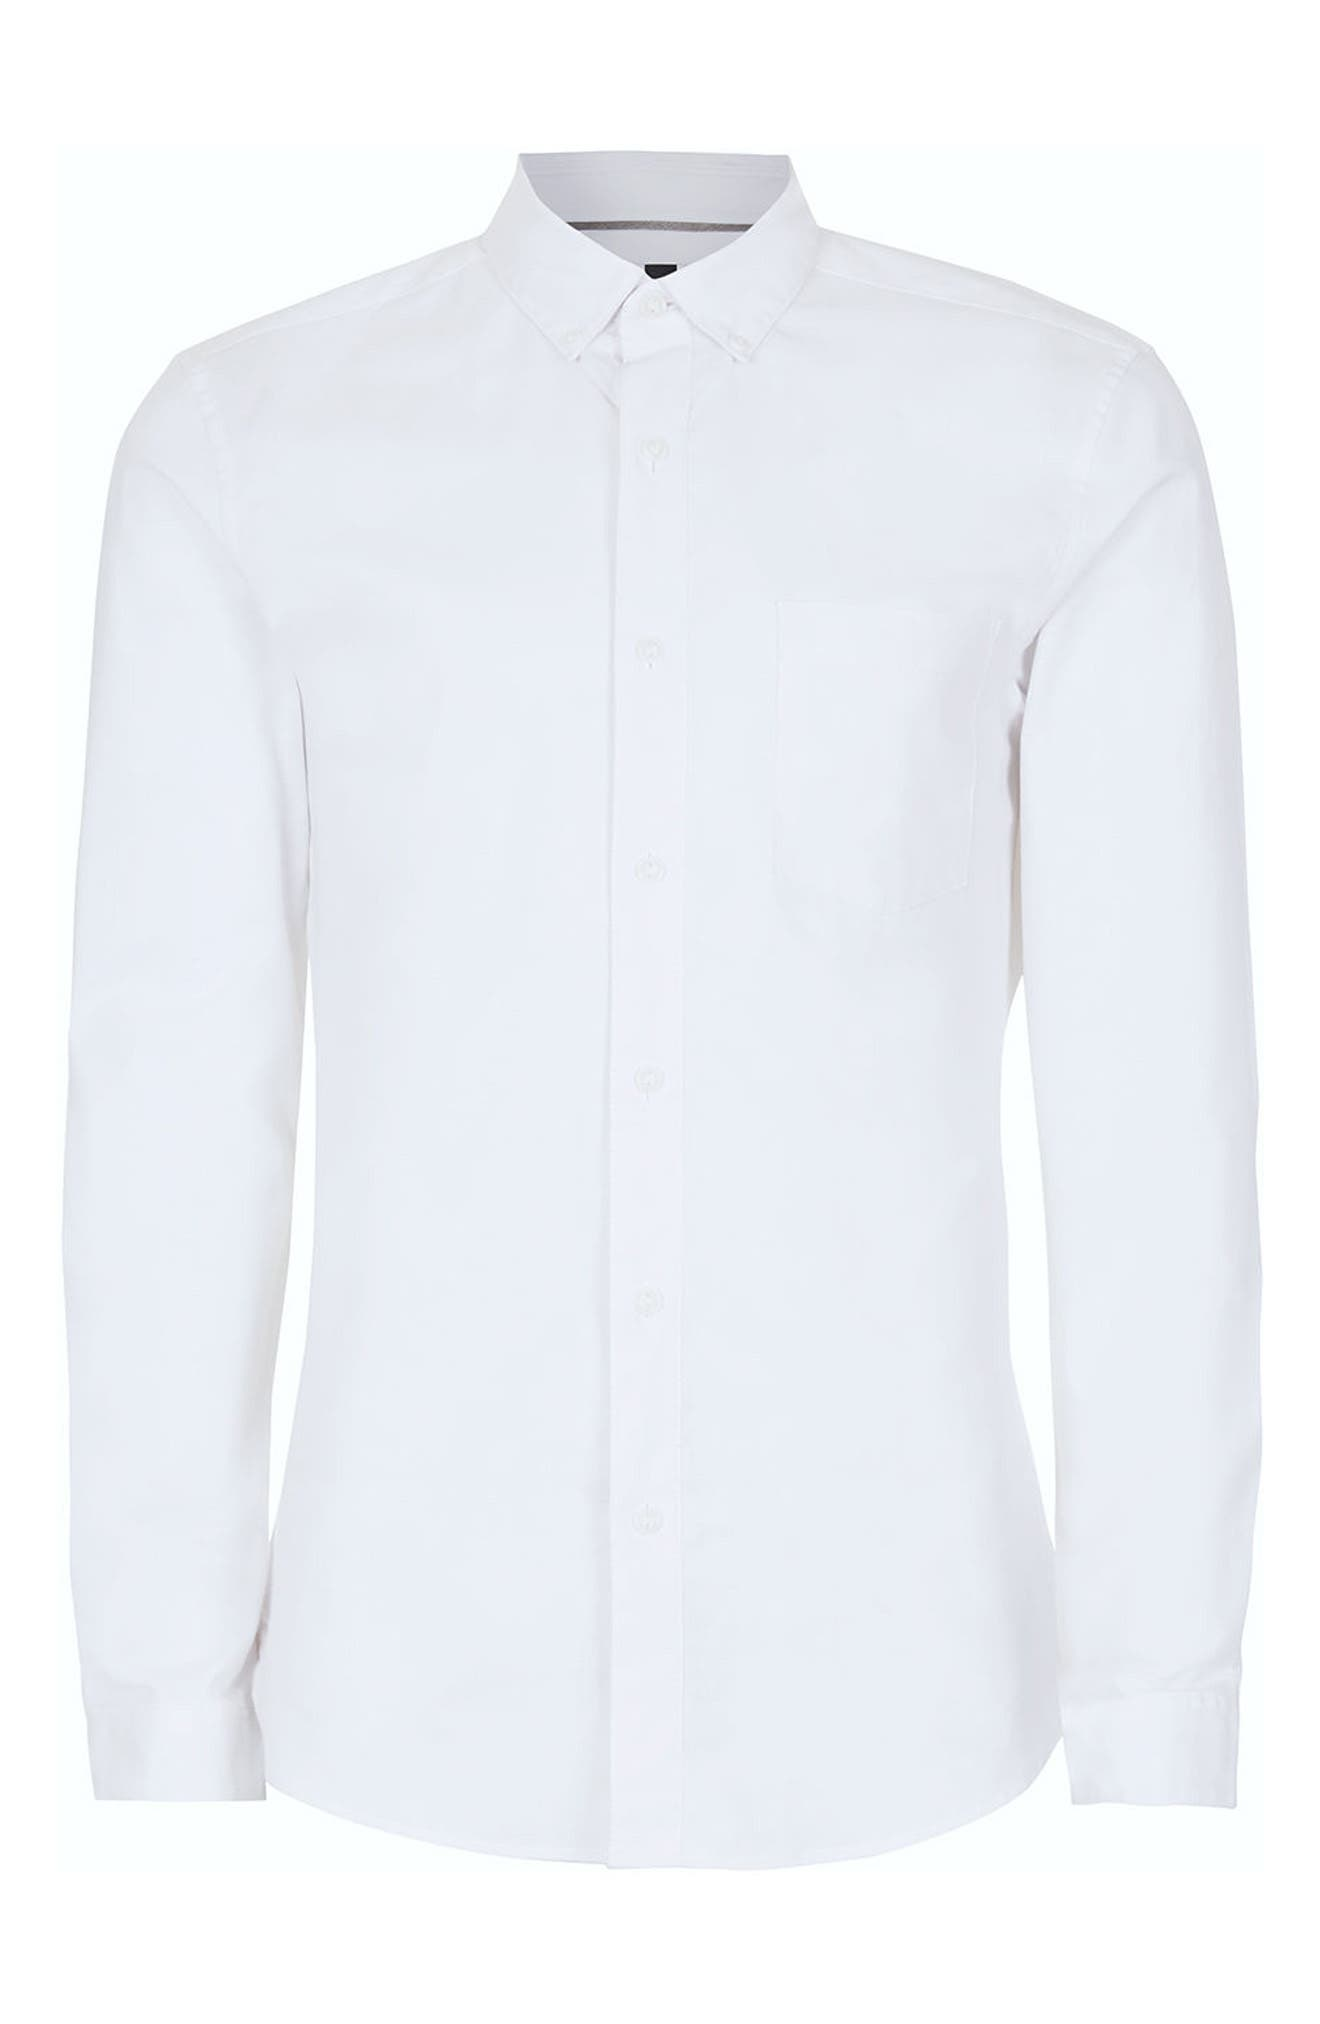 Muscle Fit Oxford Shirt,                             Alternate thumbnail 4, color,                             100